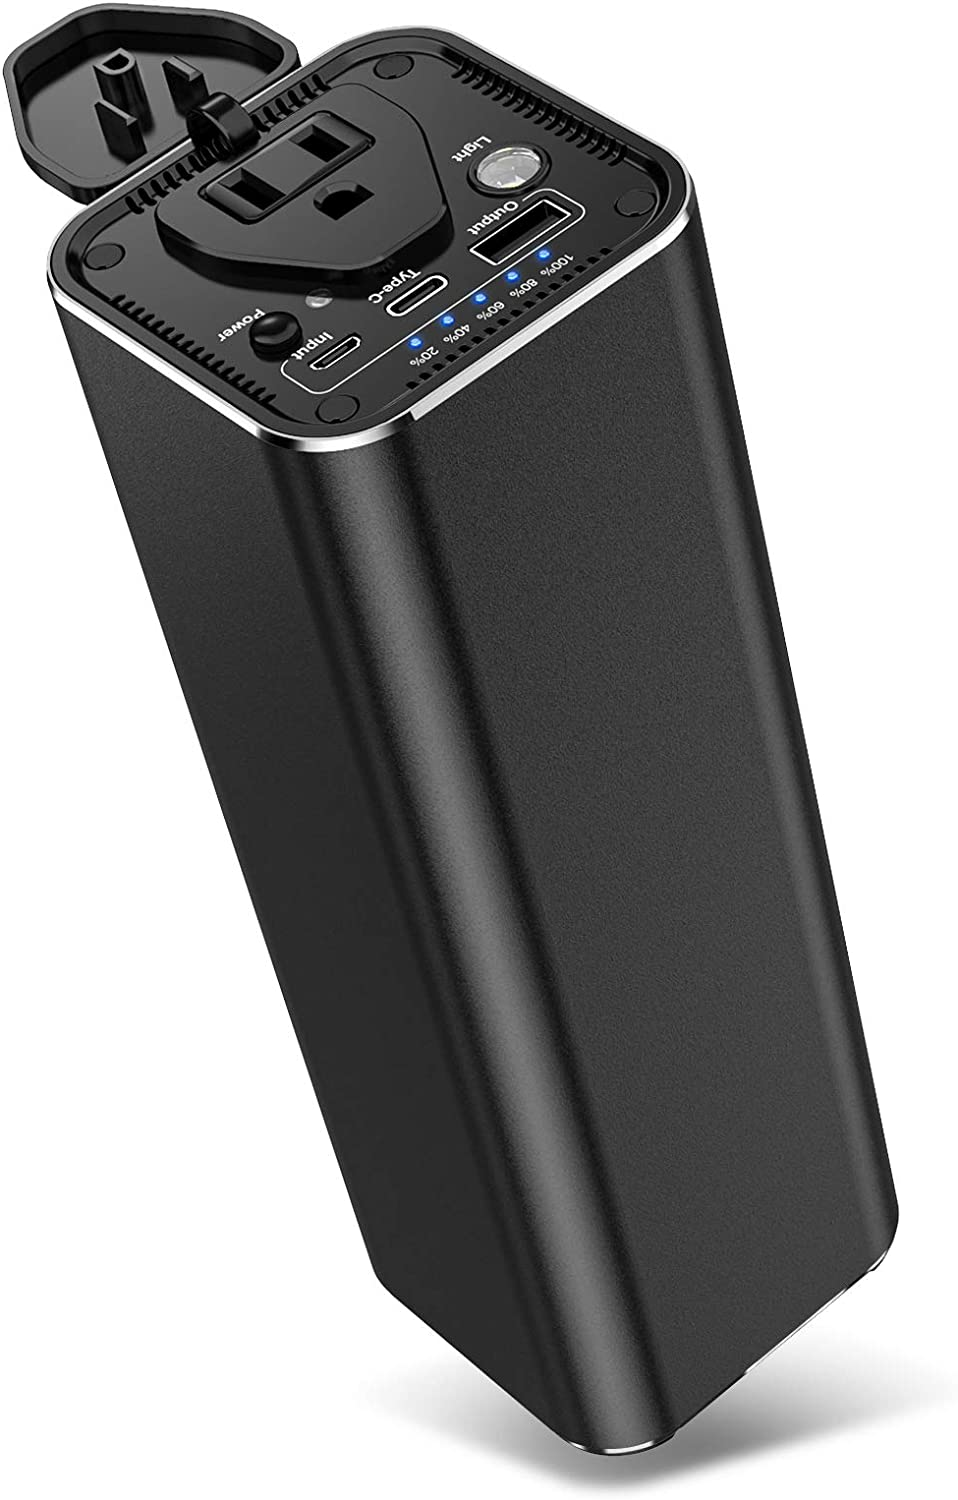 Portable Charger 31200mAh Power Bank, 100W AC Outlet Laptop Power Bank Battery Pack, External Battery Pack for iPhone, Samsung, HP, Dell, Lenovo, MacBook